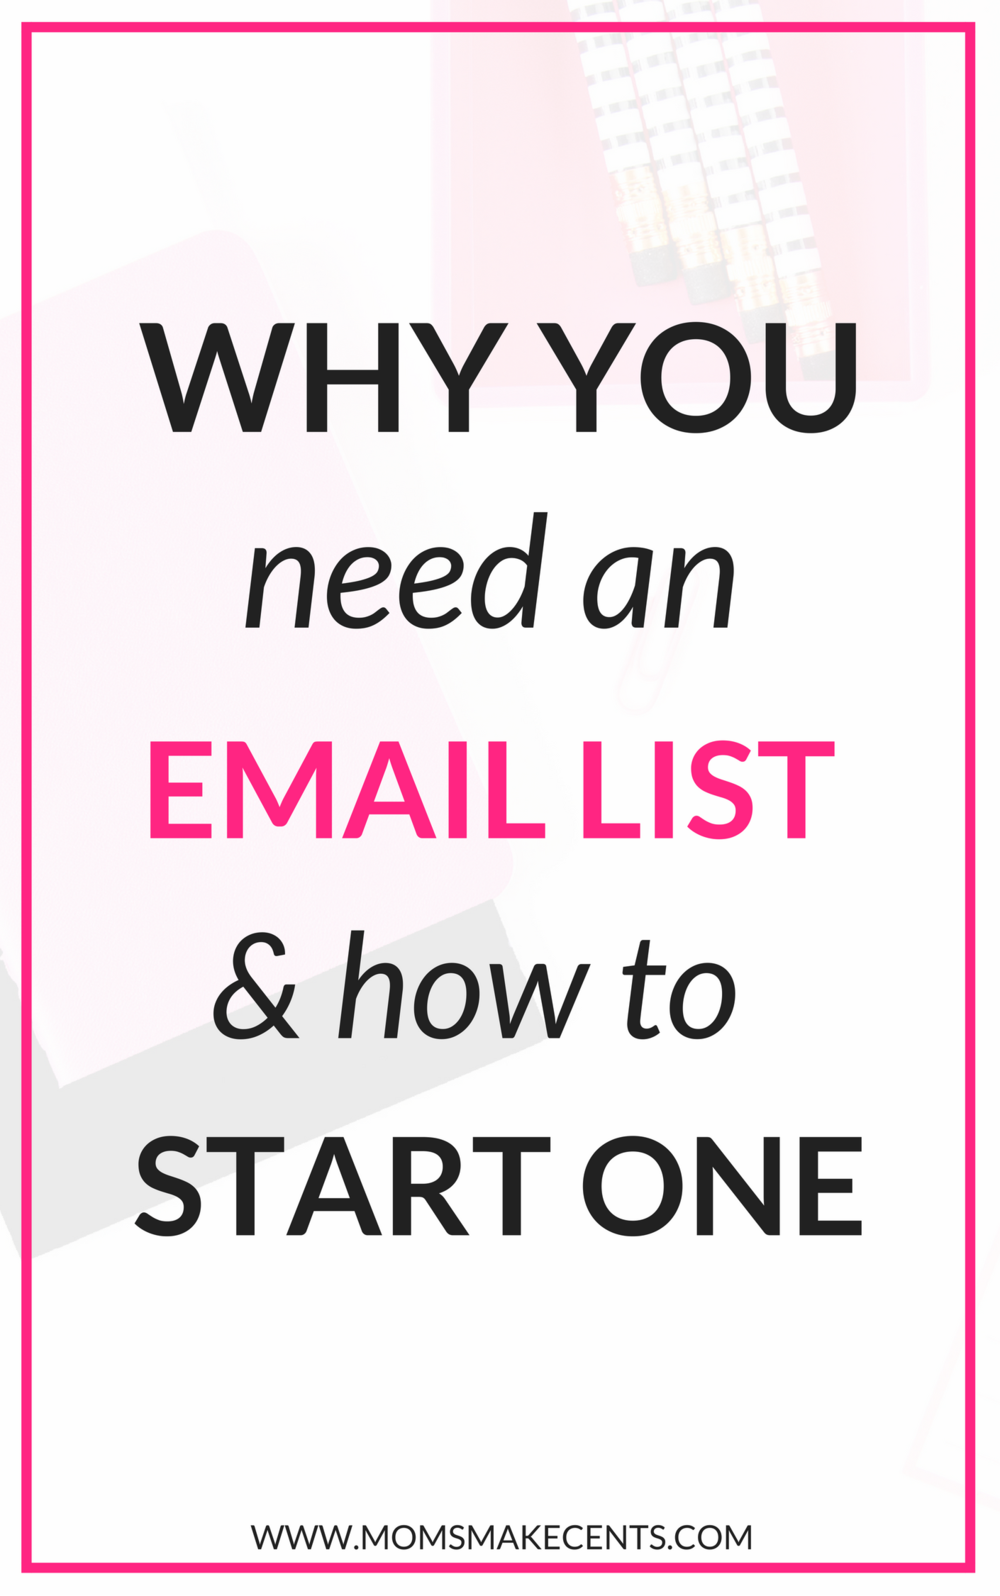 Why You Need An Email List + How to Start One